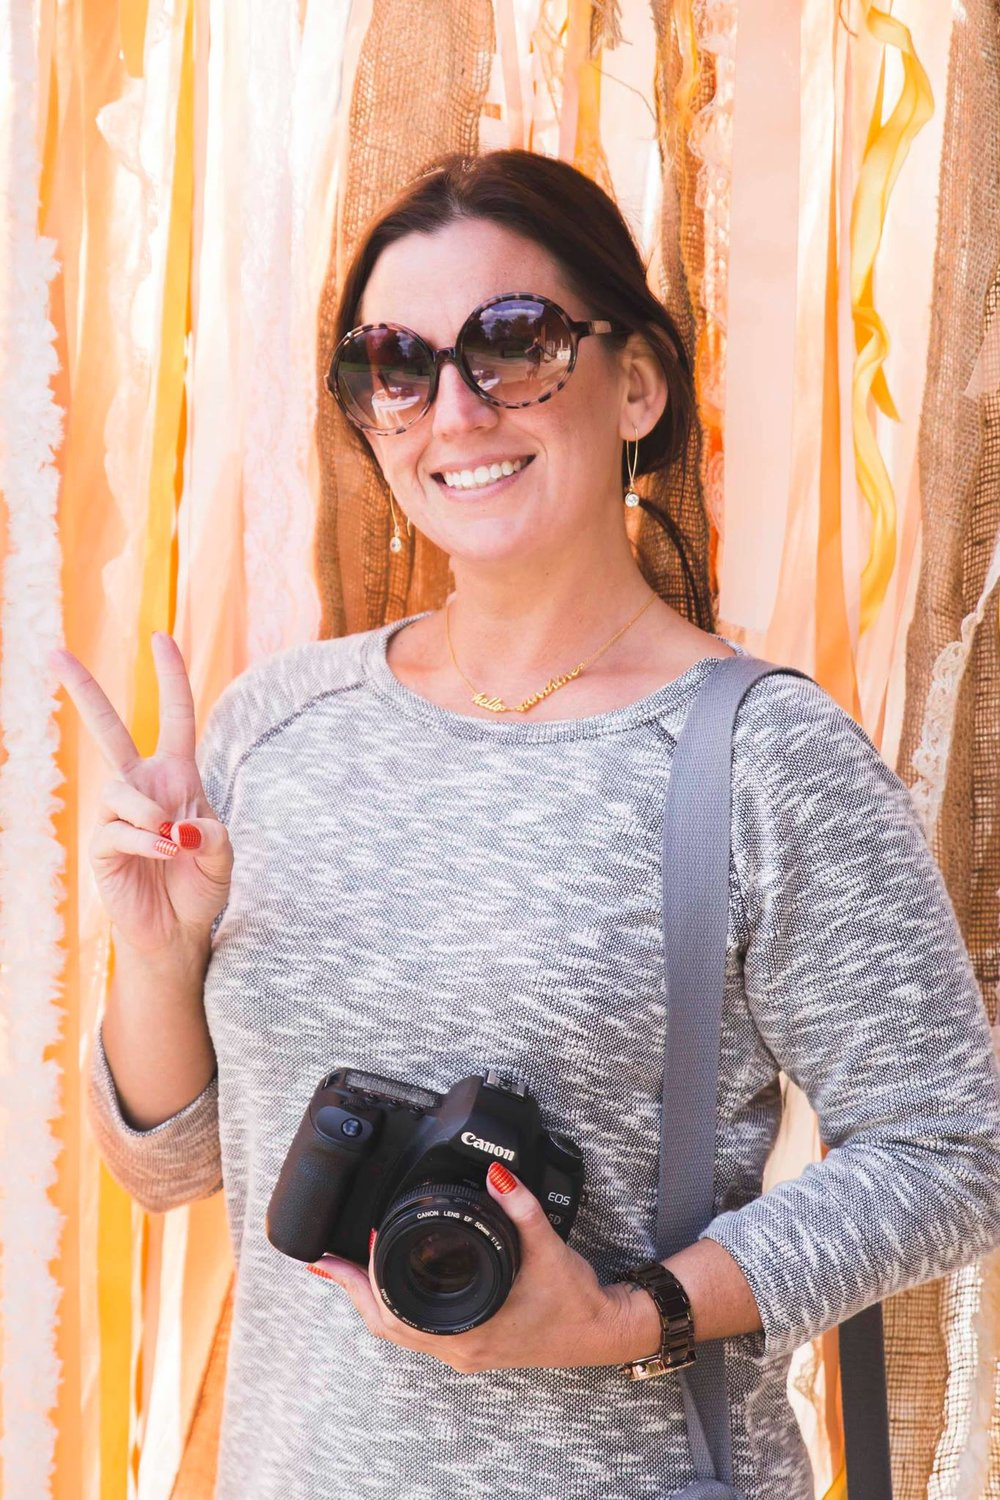 Melinda: - Hello! I am the founder of Bliss Events & Co. With 18 years of experience in the wedding industry and an absolute passion for it I strive to make each event memorable for my clients. Travel is also my other passion! Destination weddings, honeymoons, and elopements are my specialty.